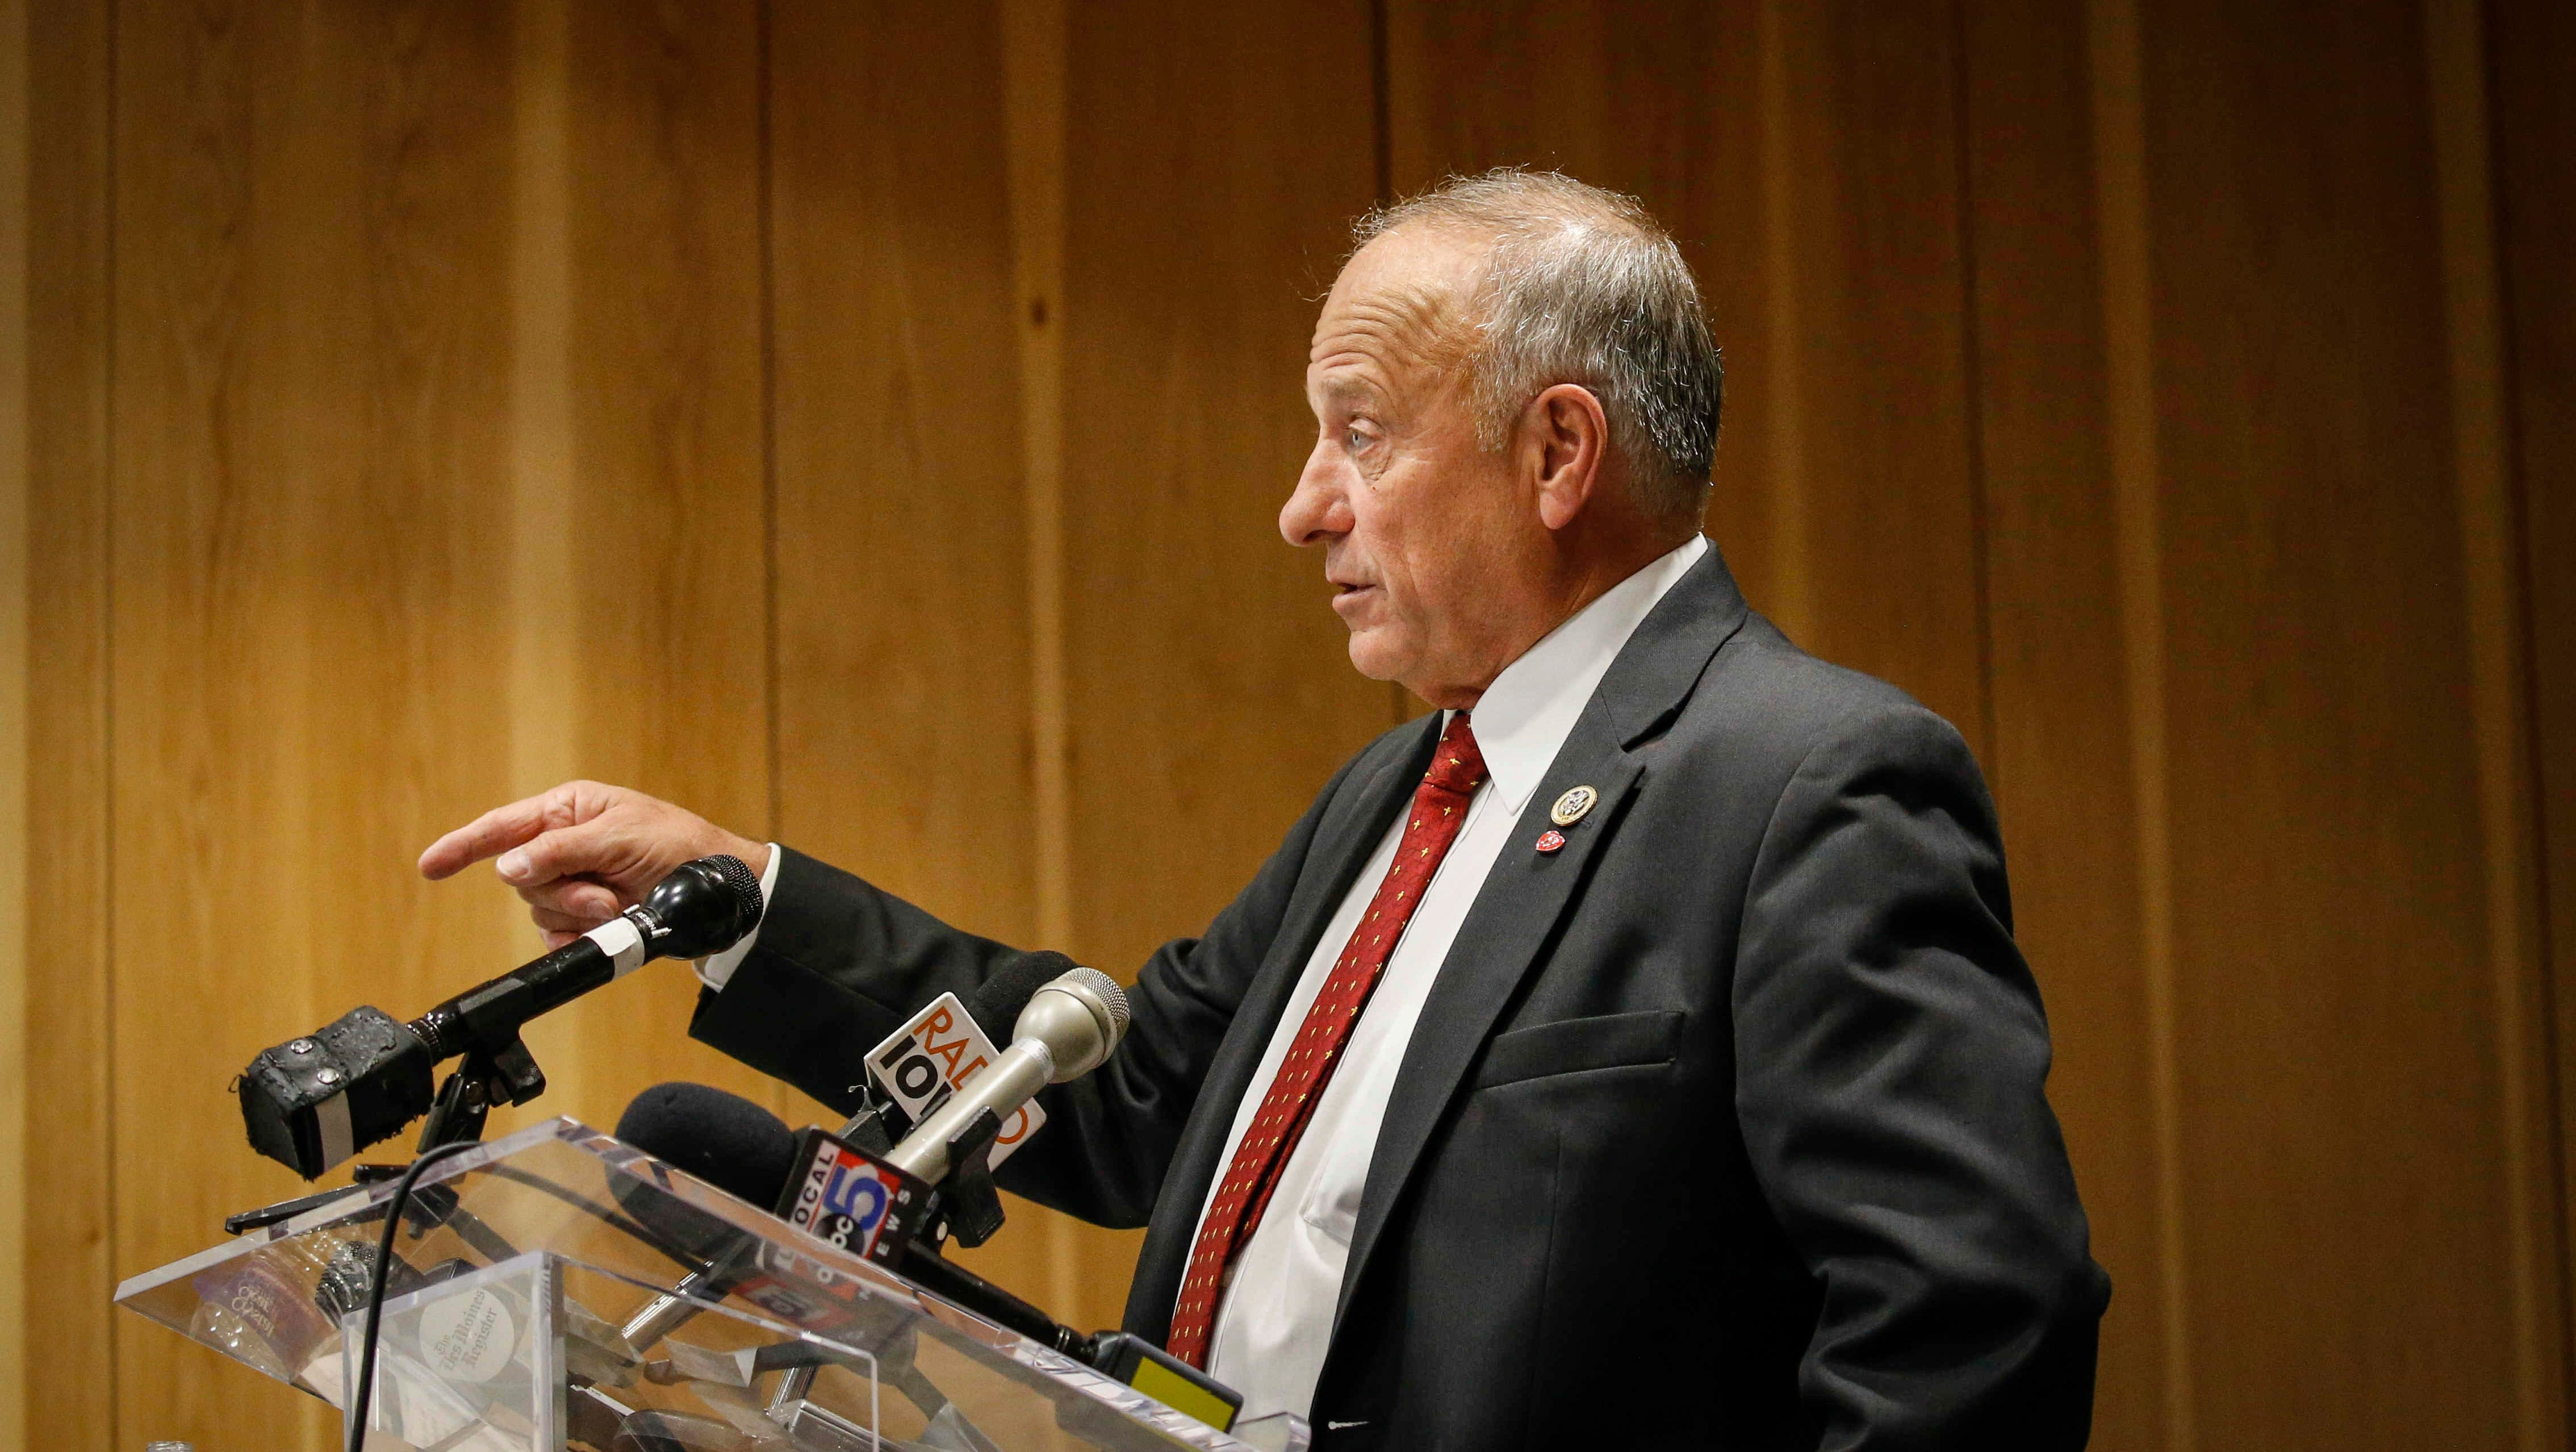 Congressman Steve King speaks during a candidate forum at the Greater Des Moines Partnership office in Des Moines on Thursday, Nov. 1, 2018.